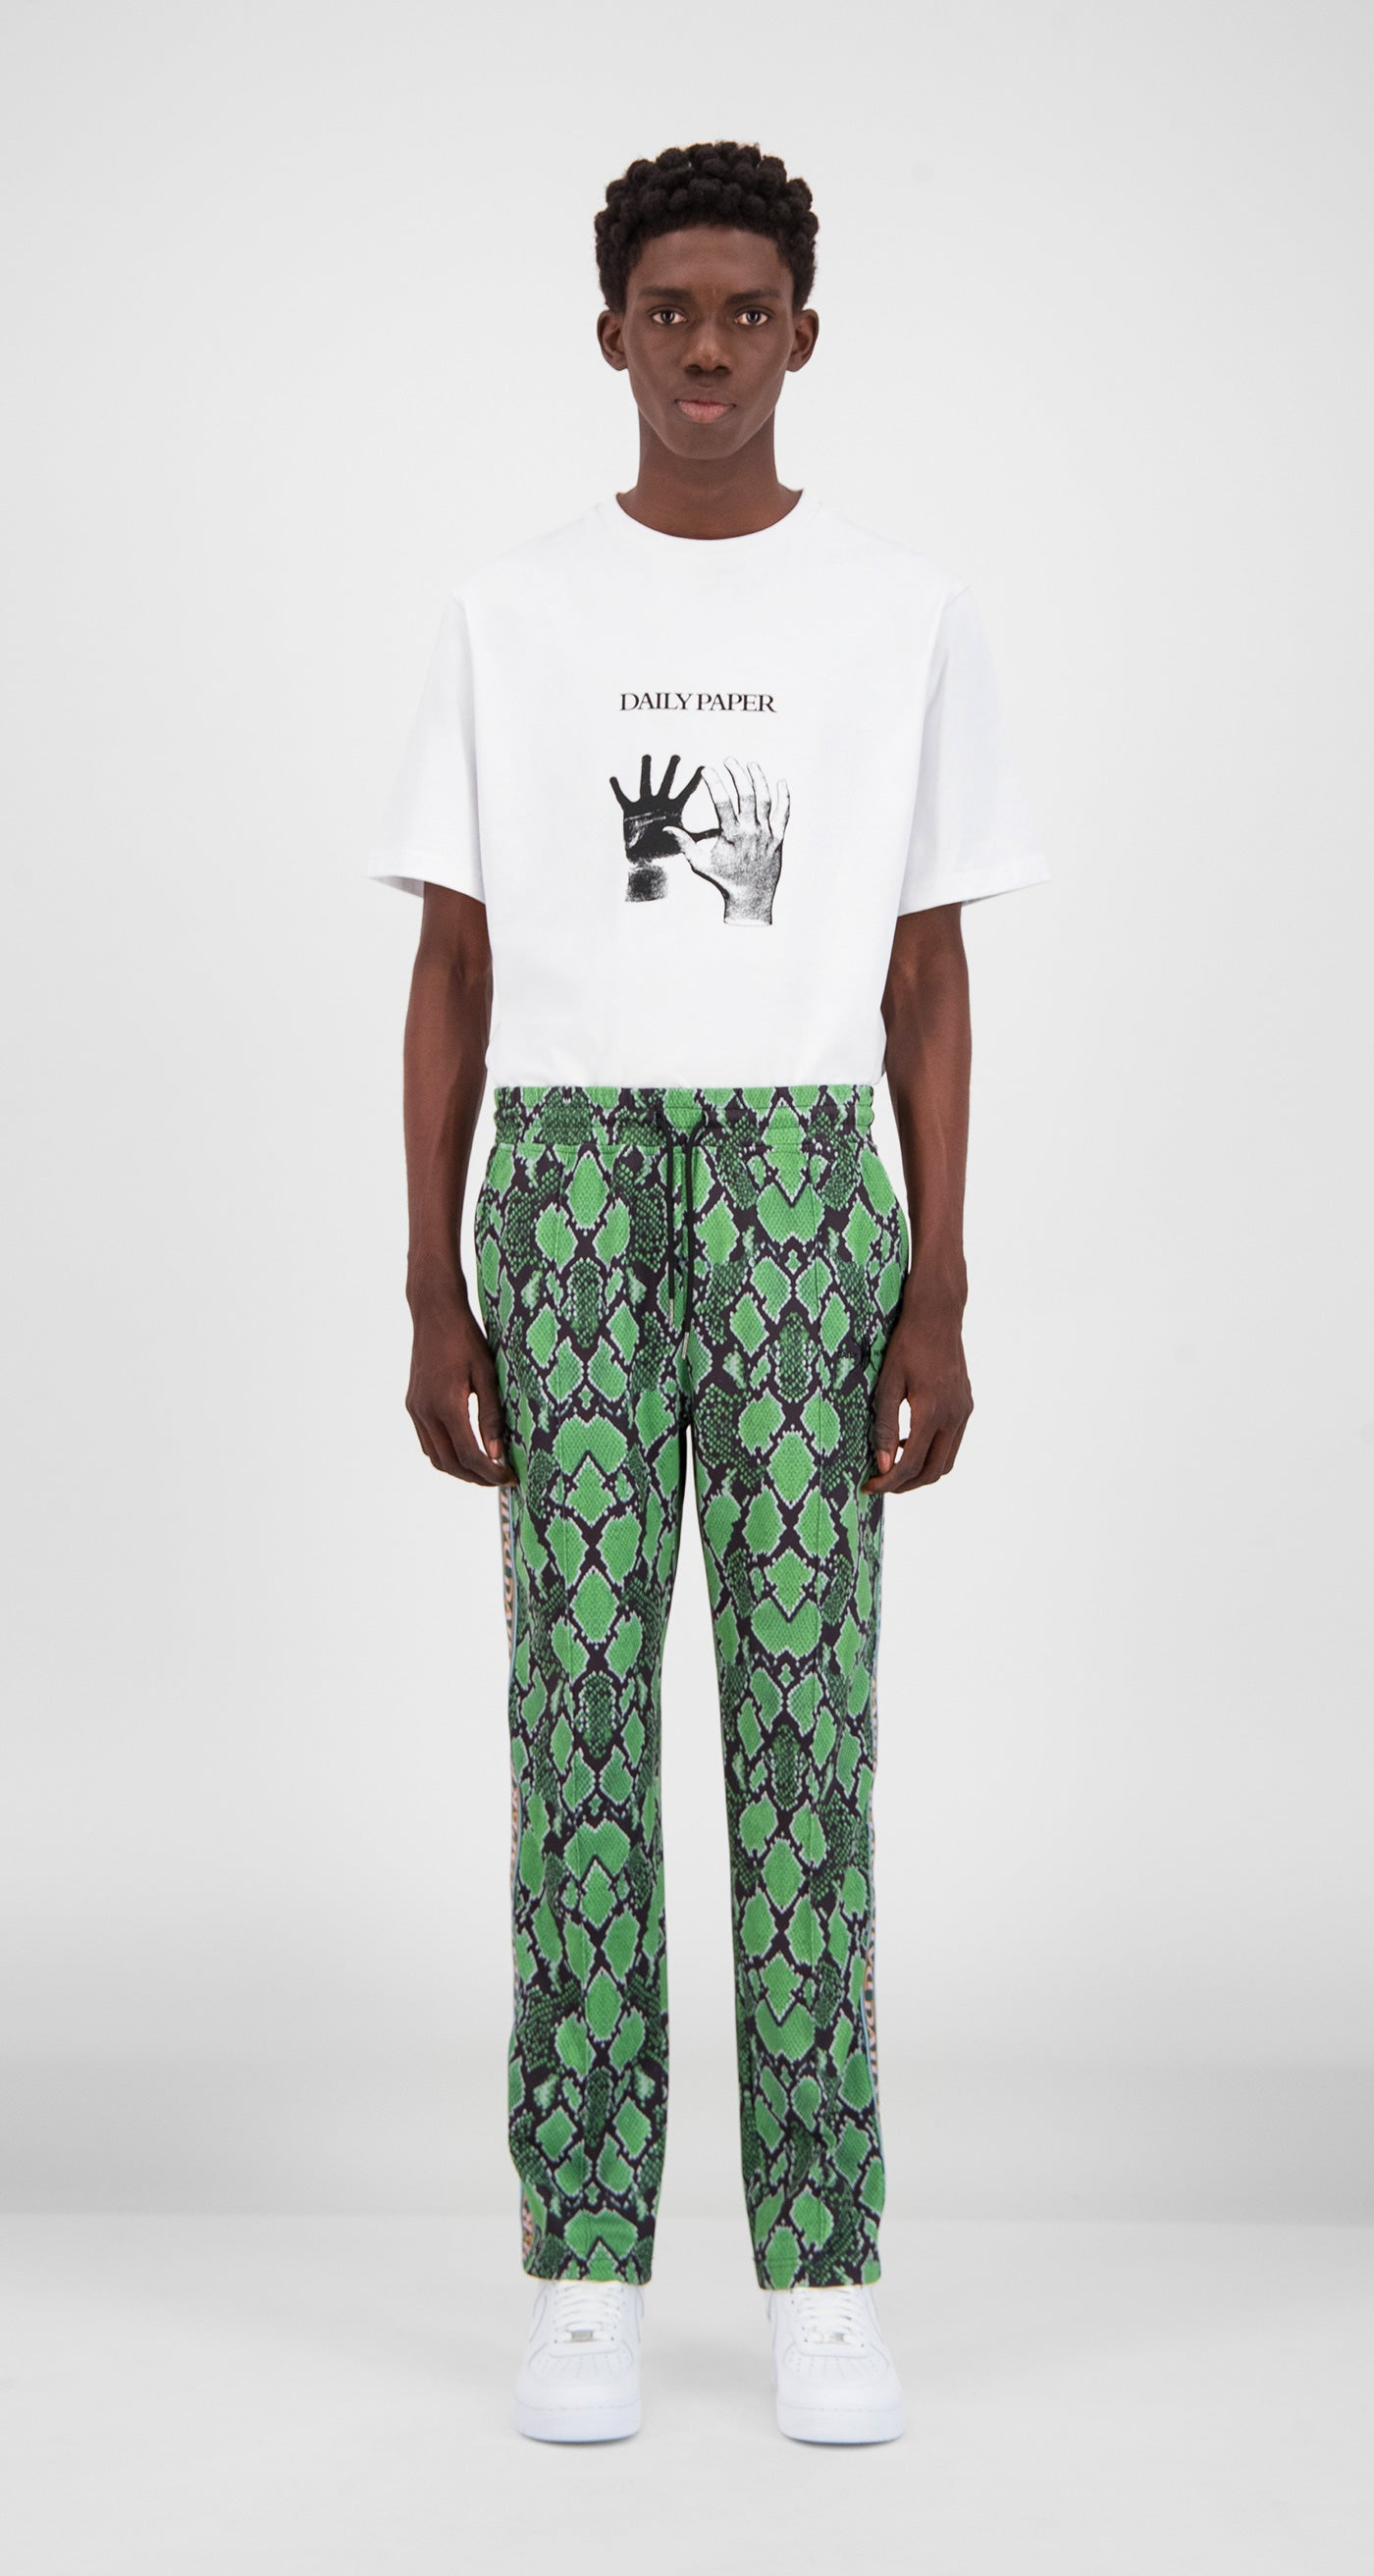 Daily Paper - Green Snake Liba Snake Pants Men